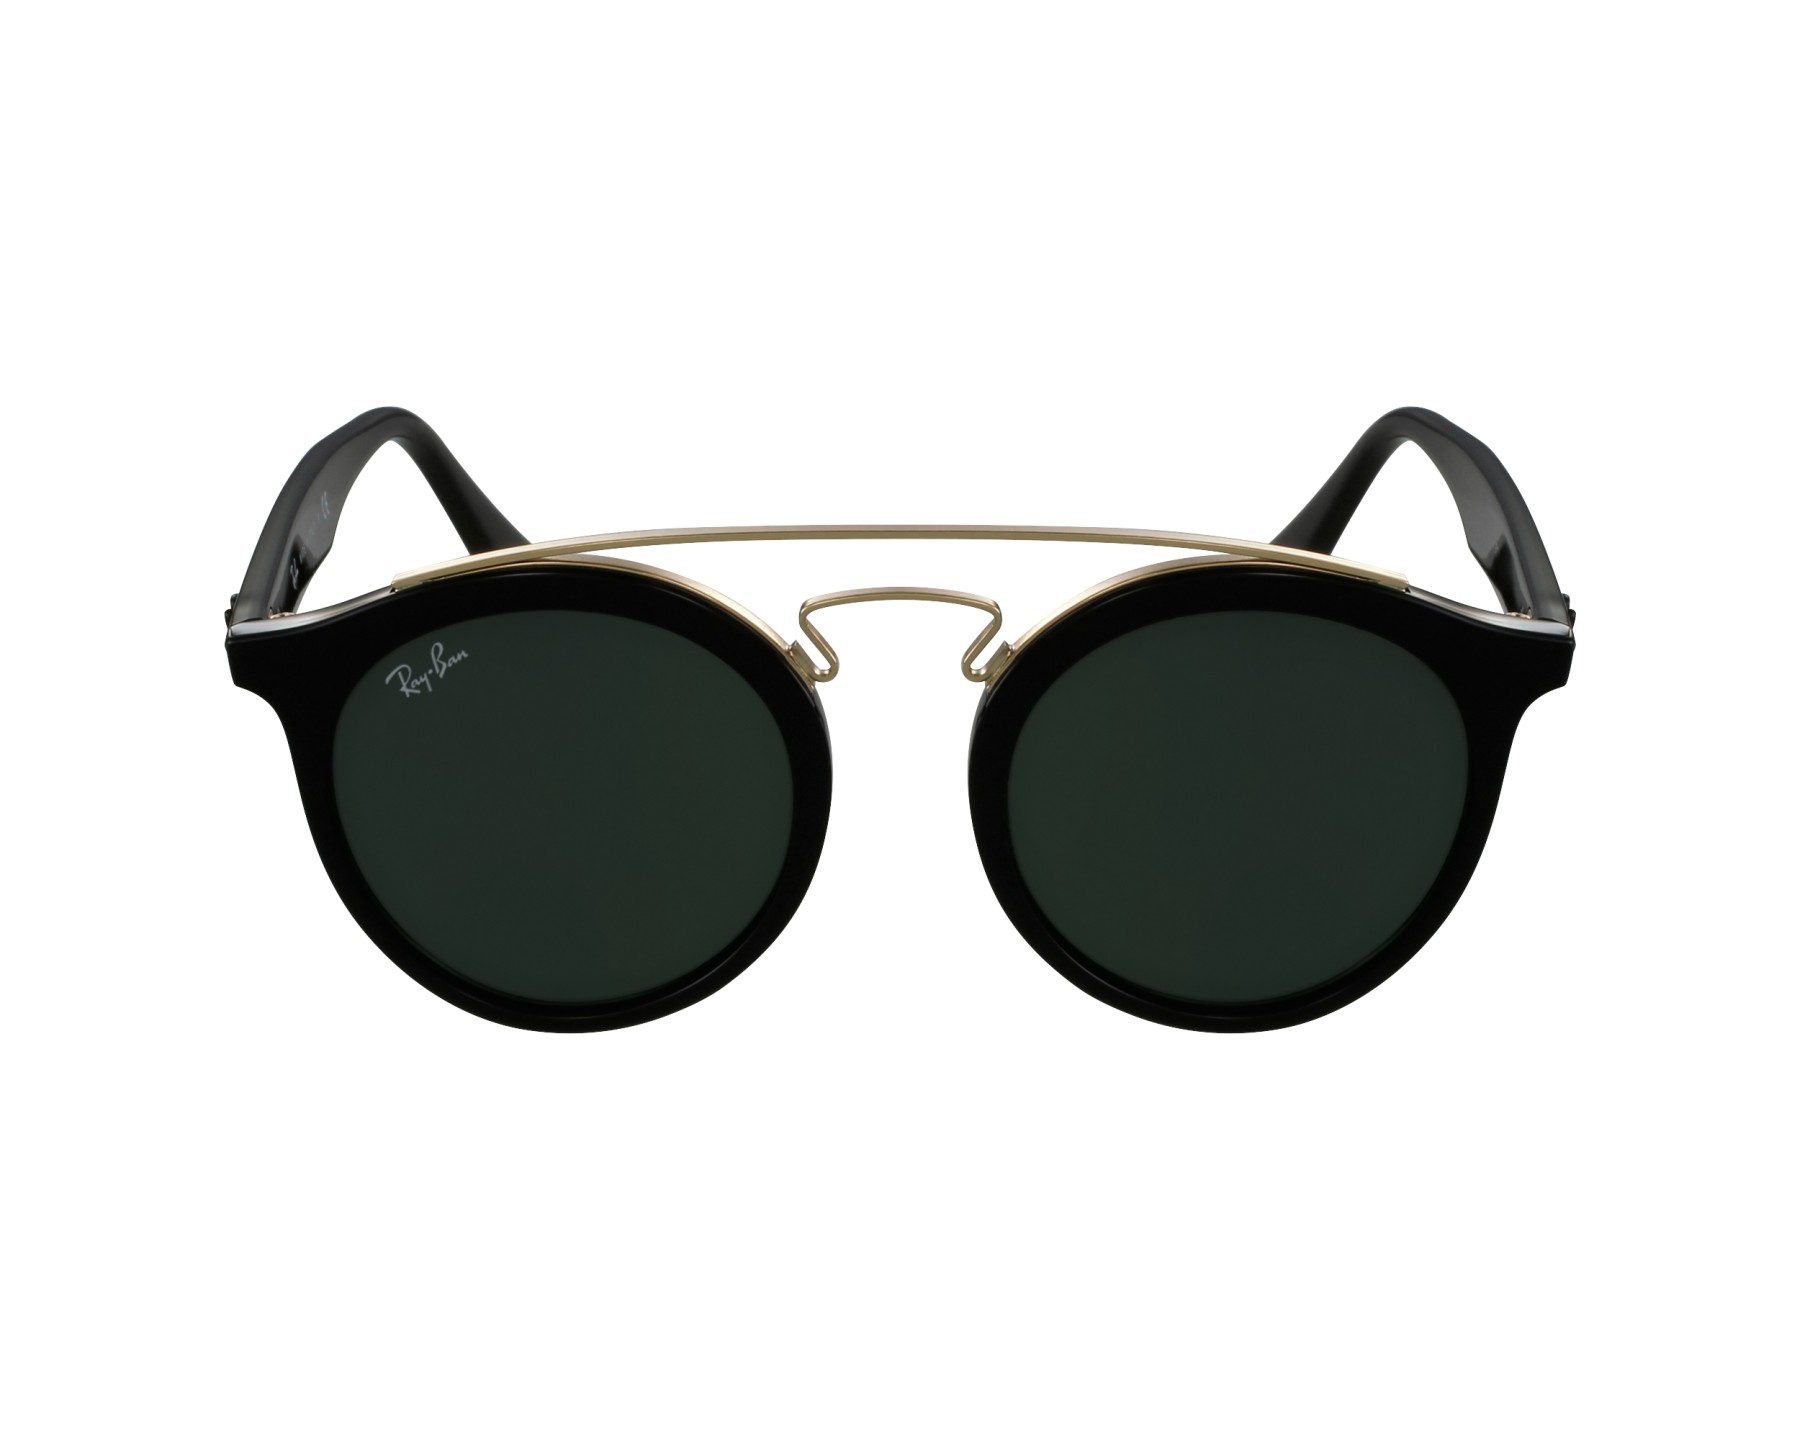 6f8d40060a thumbnail Sunglasses Ray-Ban RB-4256 601 71 46-20 Black Gold